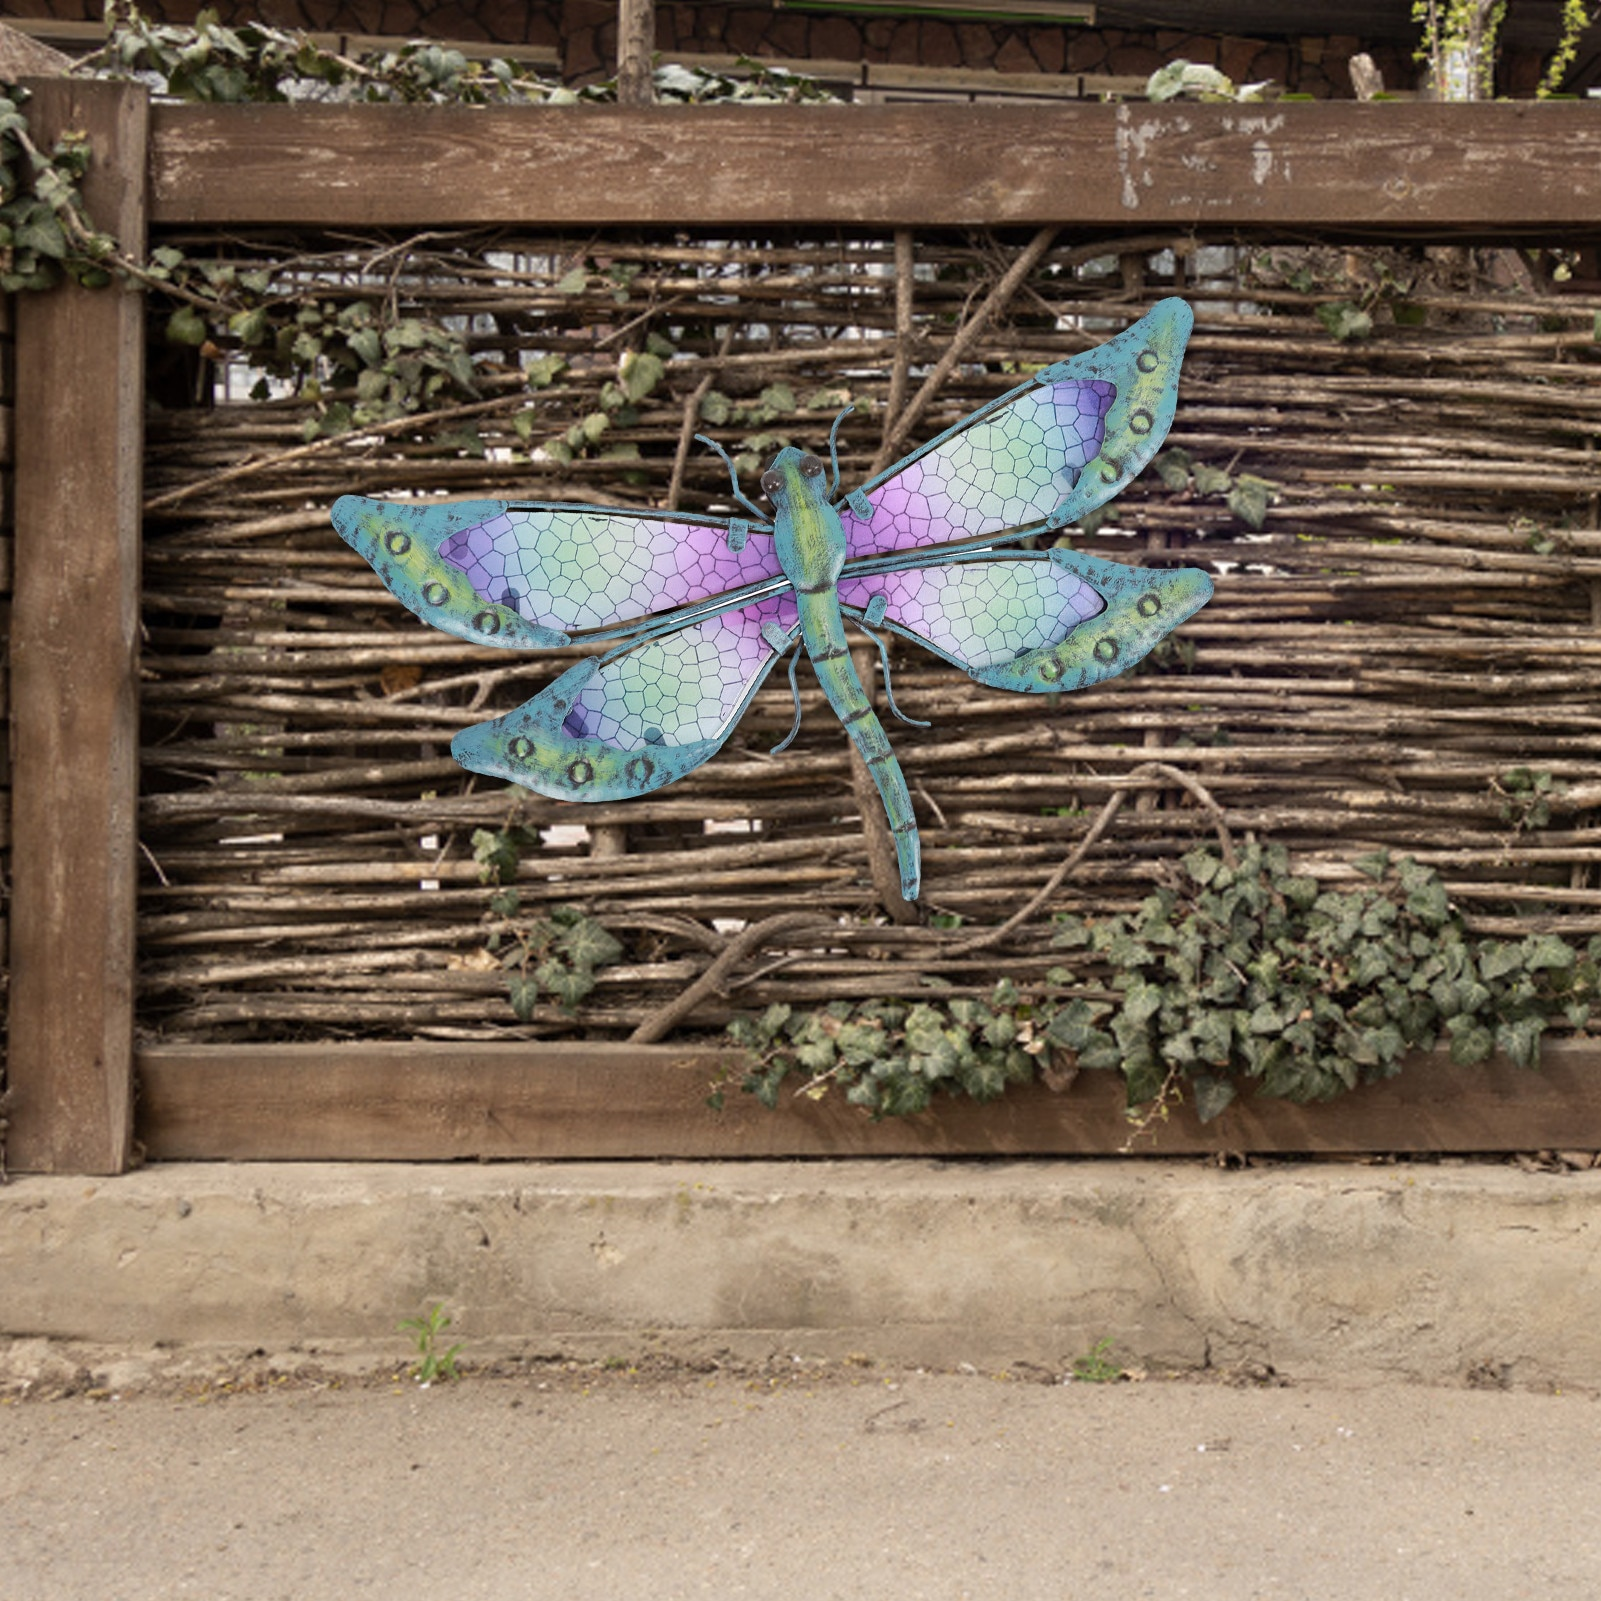 Metal Dragonfly Wall Art Garden Ornaments Miniaturas Animal Outdoor Statues And Sculptures Wall Hanging Dragonfly For Room Decor